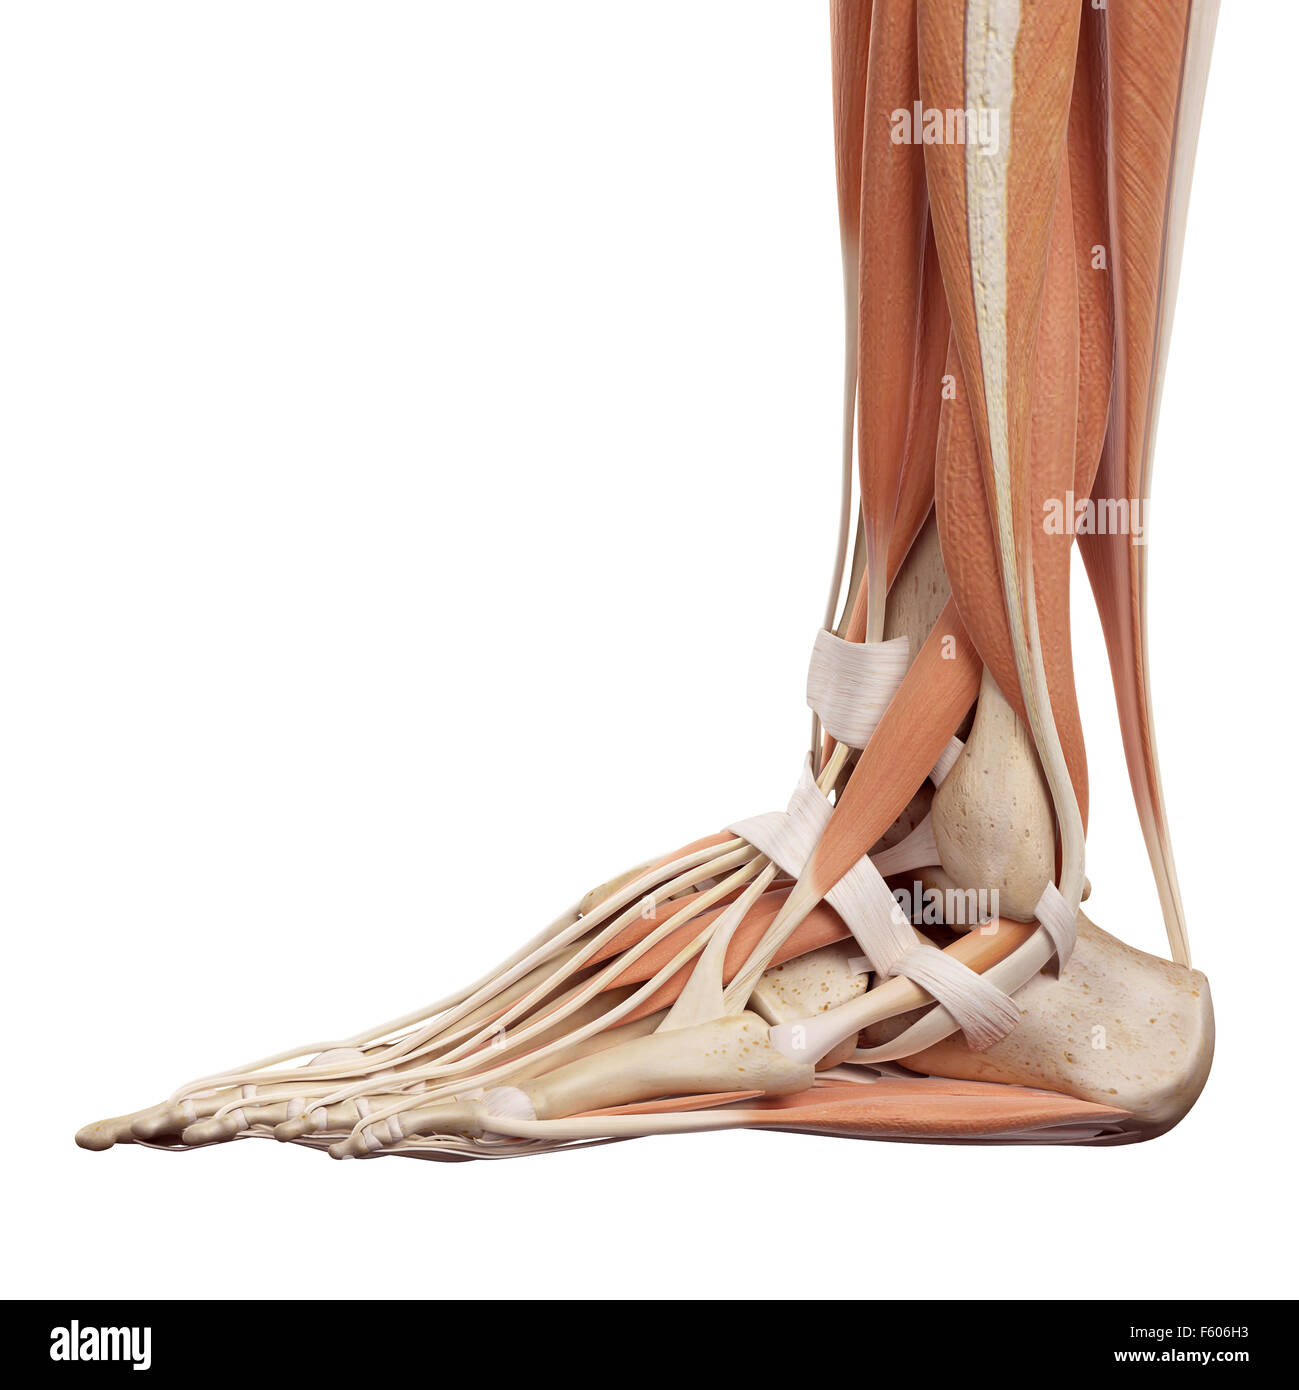 Foot Muscles Stock Photos Foot Muscles Stock Images Alamy